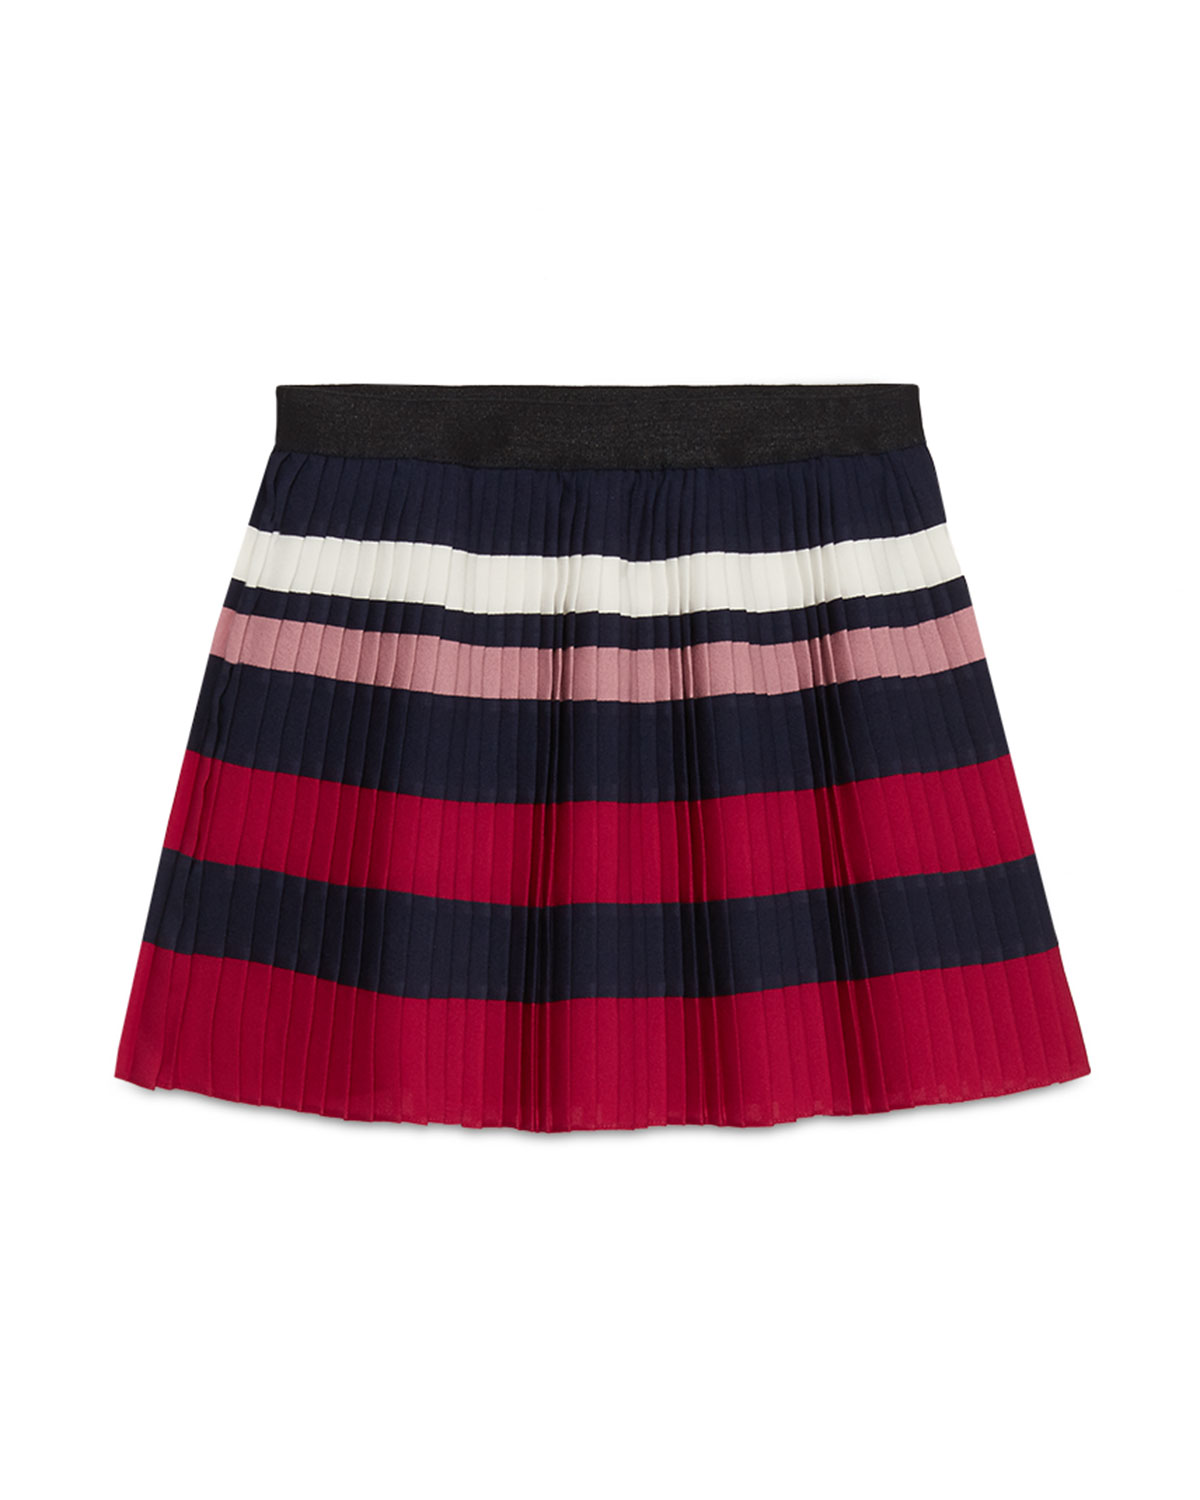 Striped Silk-Blend Pleated Skirt, Blue/Red/White, Size 6-12